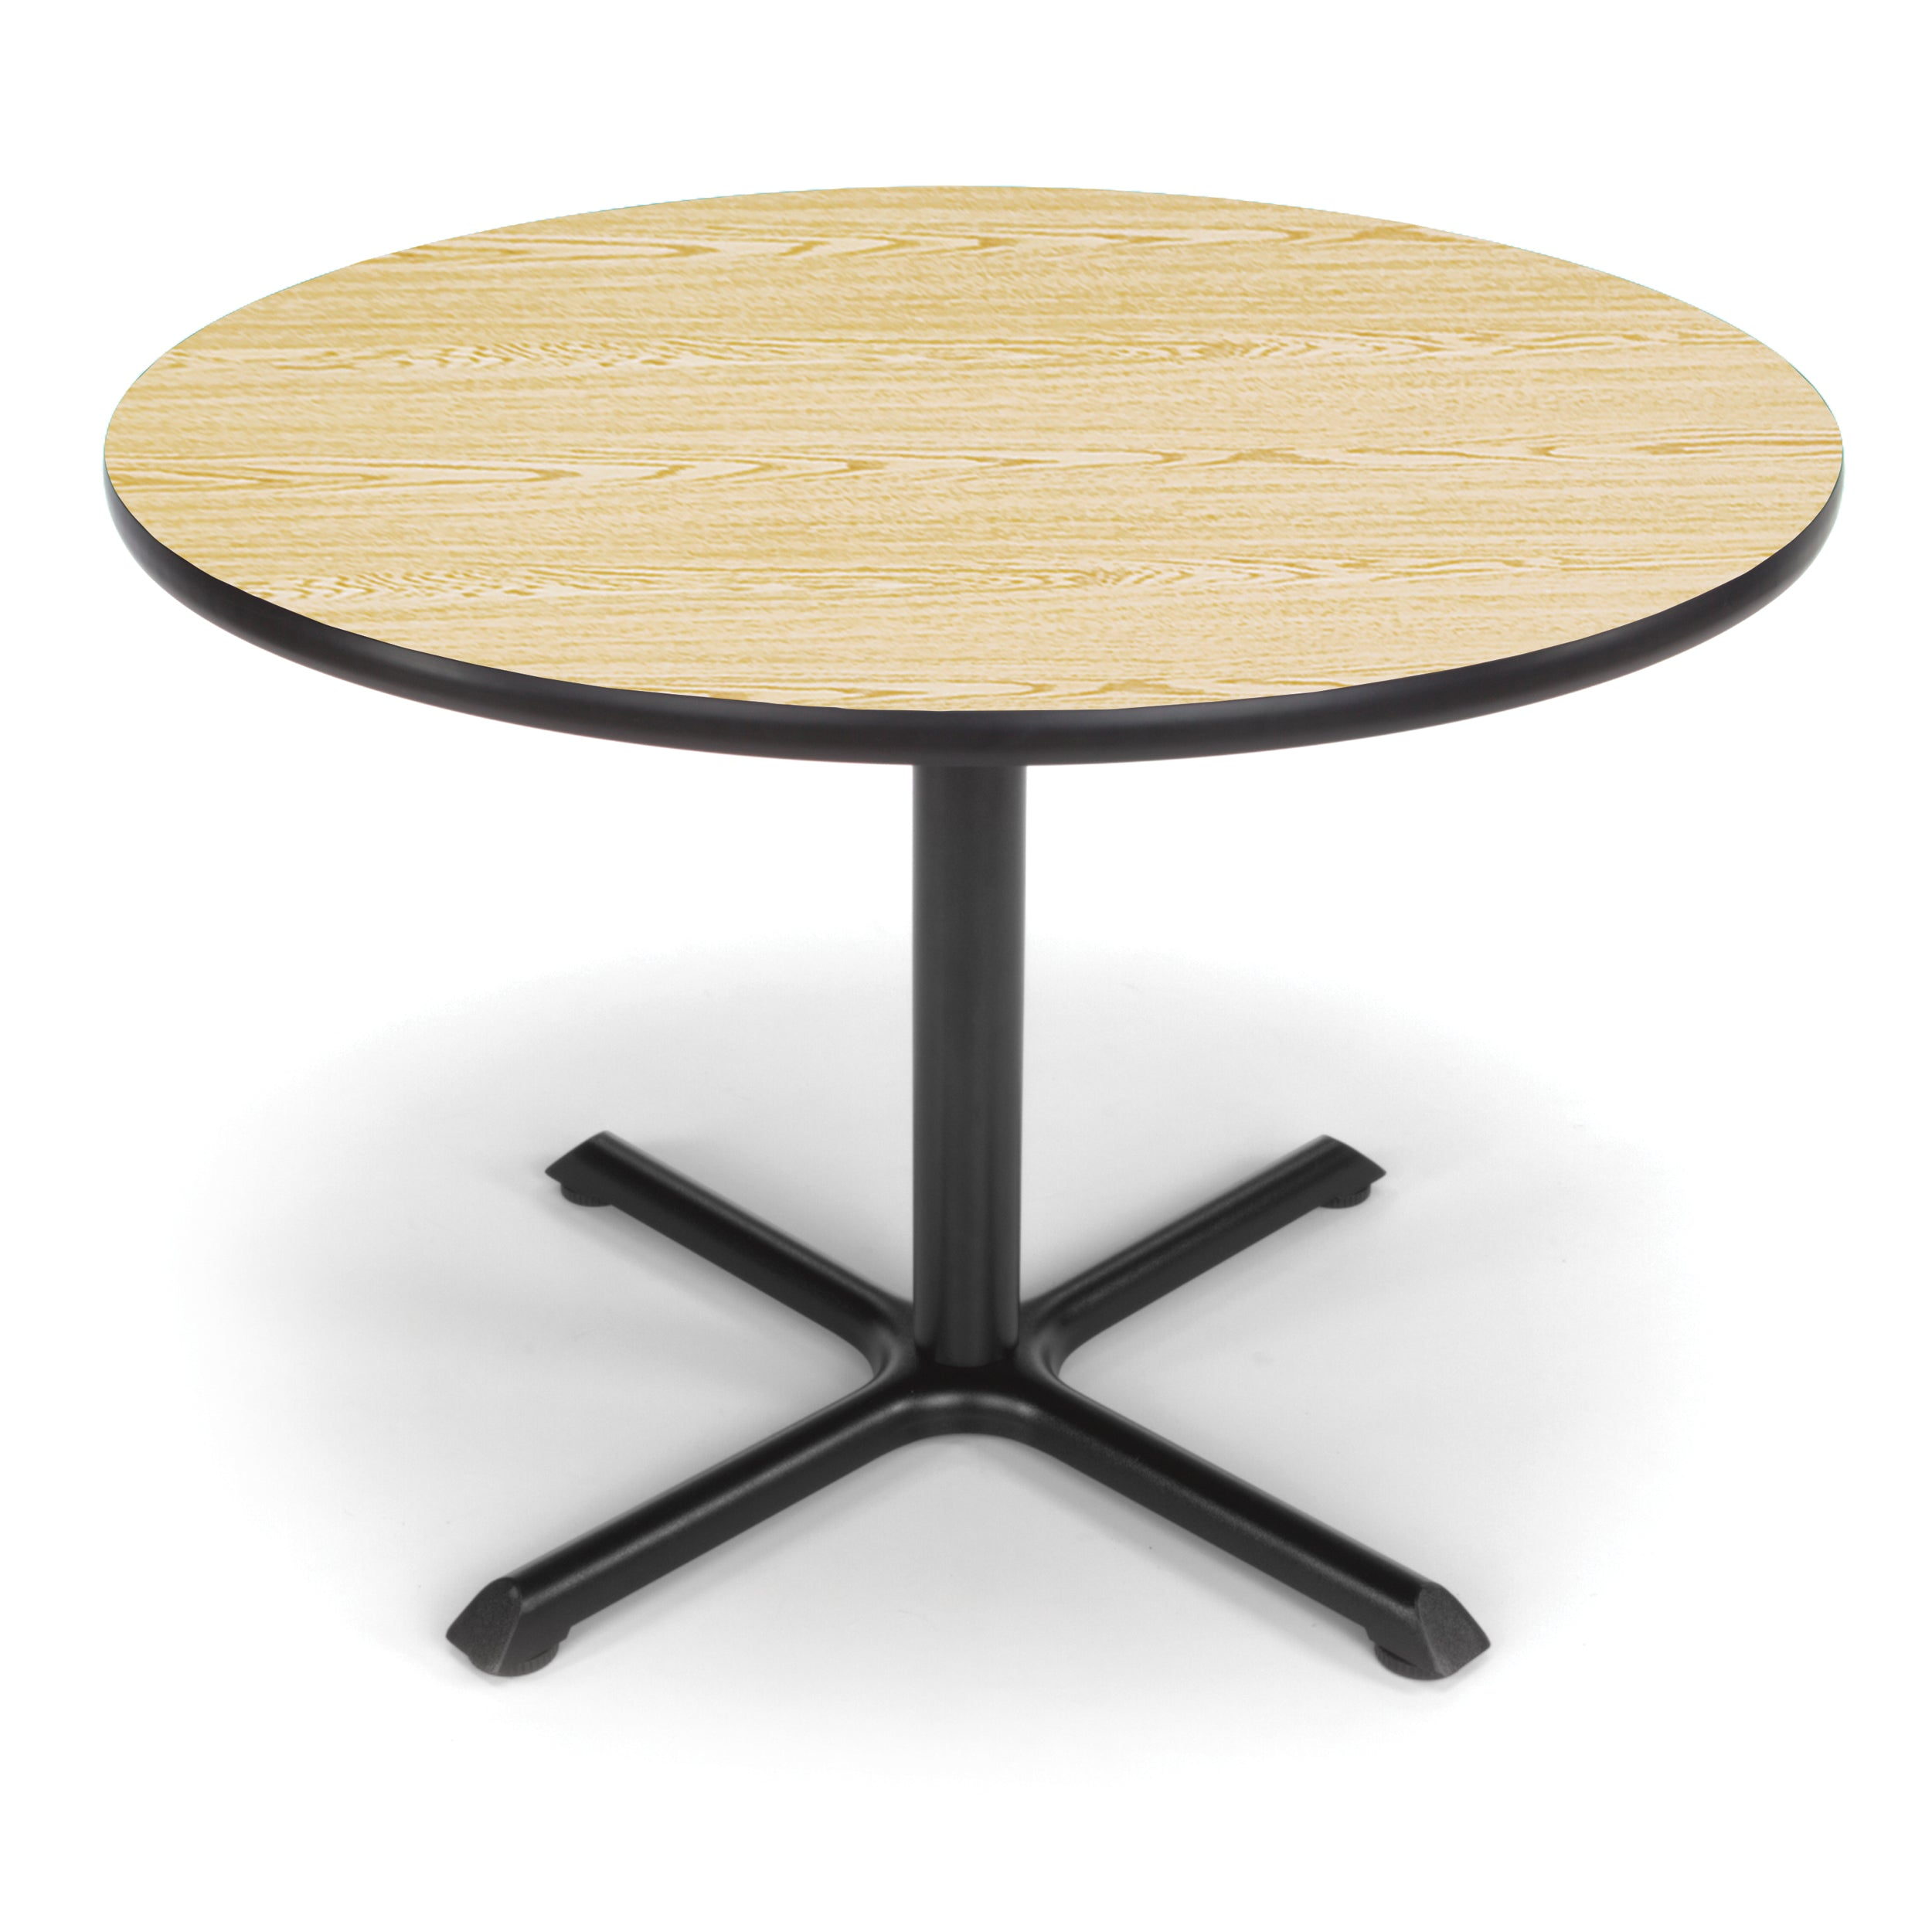 Ofminc Model XT42RD 42 Inch Round Multi-Purpose Table